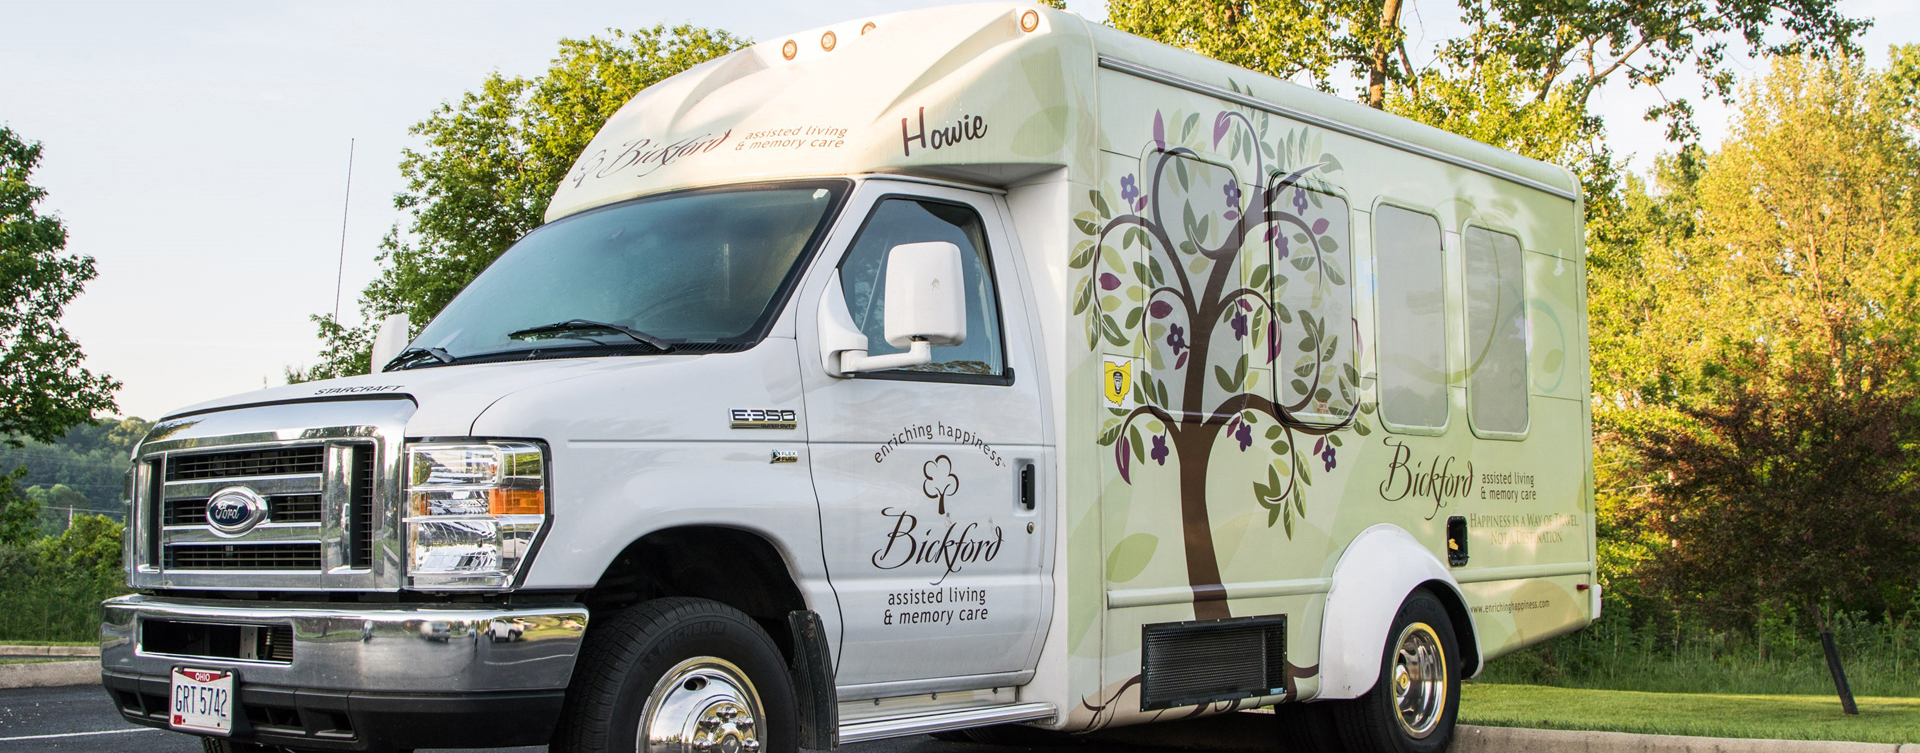 Participate in community outings aboard the Bickford bus HOWIE at Bickford of Oswego